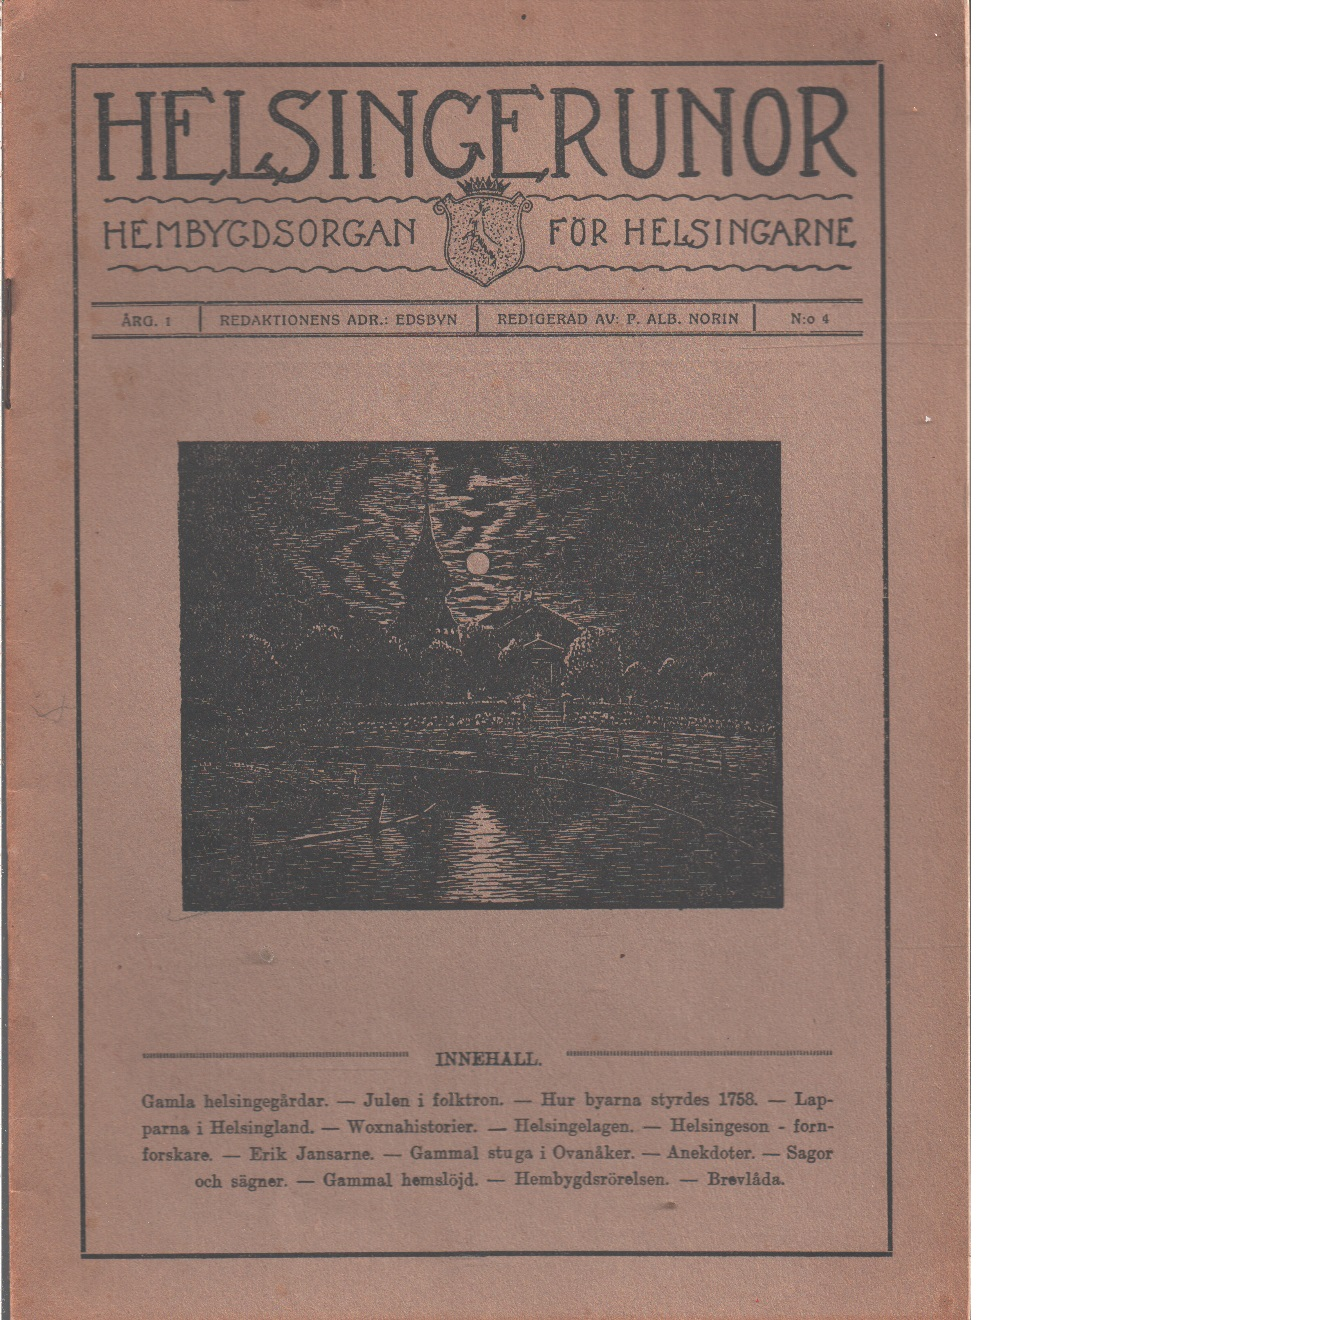 Helsingerunor 1921 nr 4 - Red.